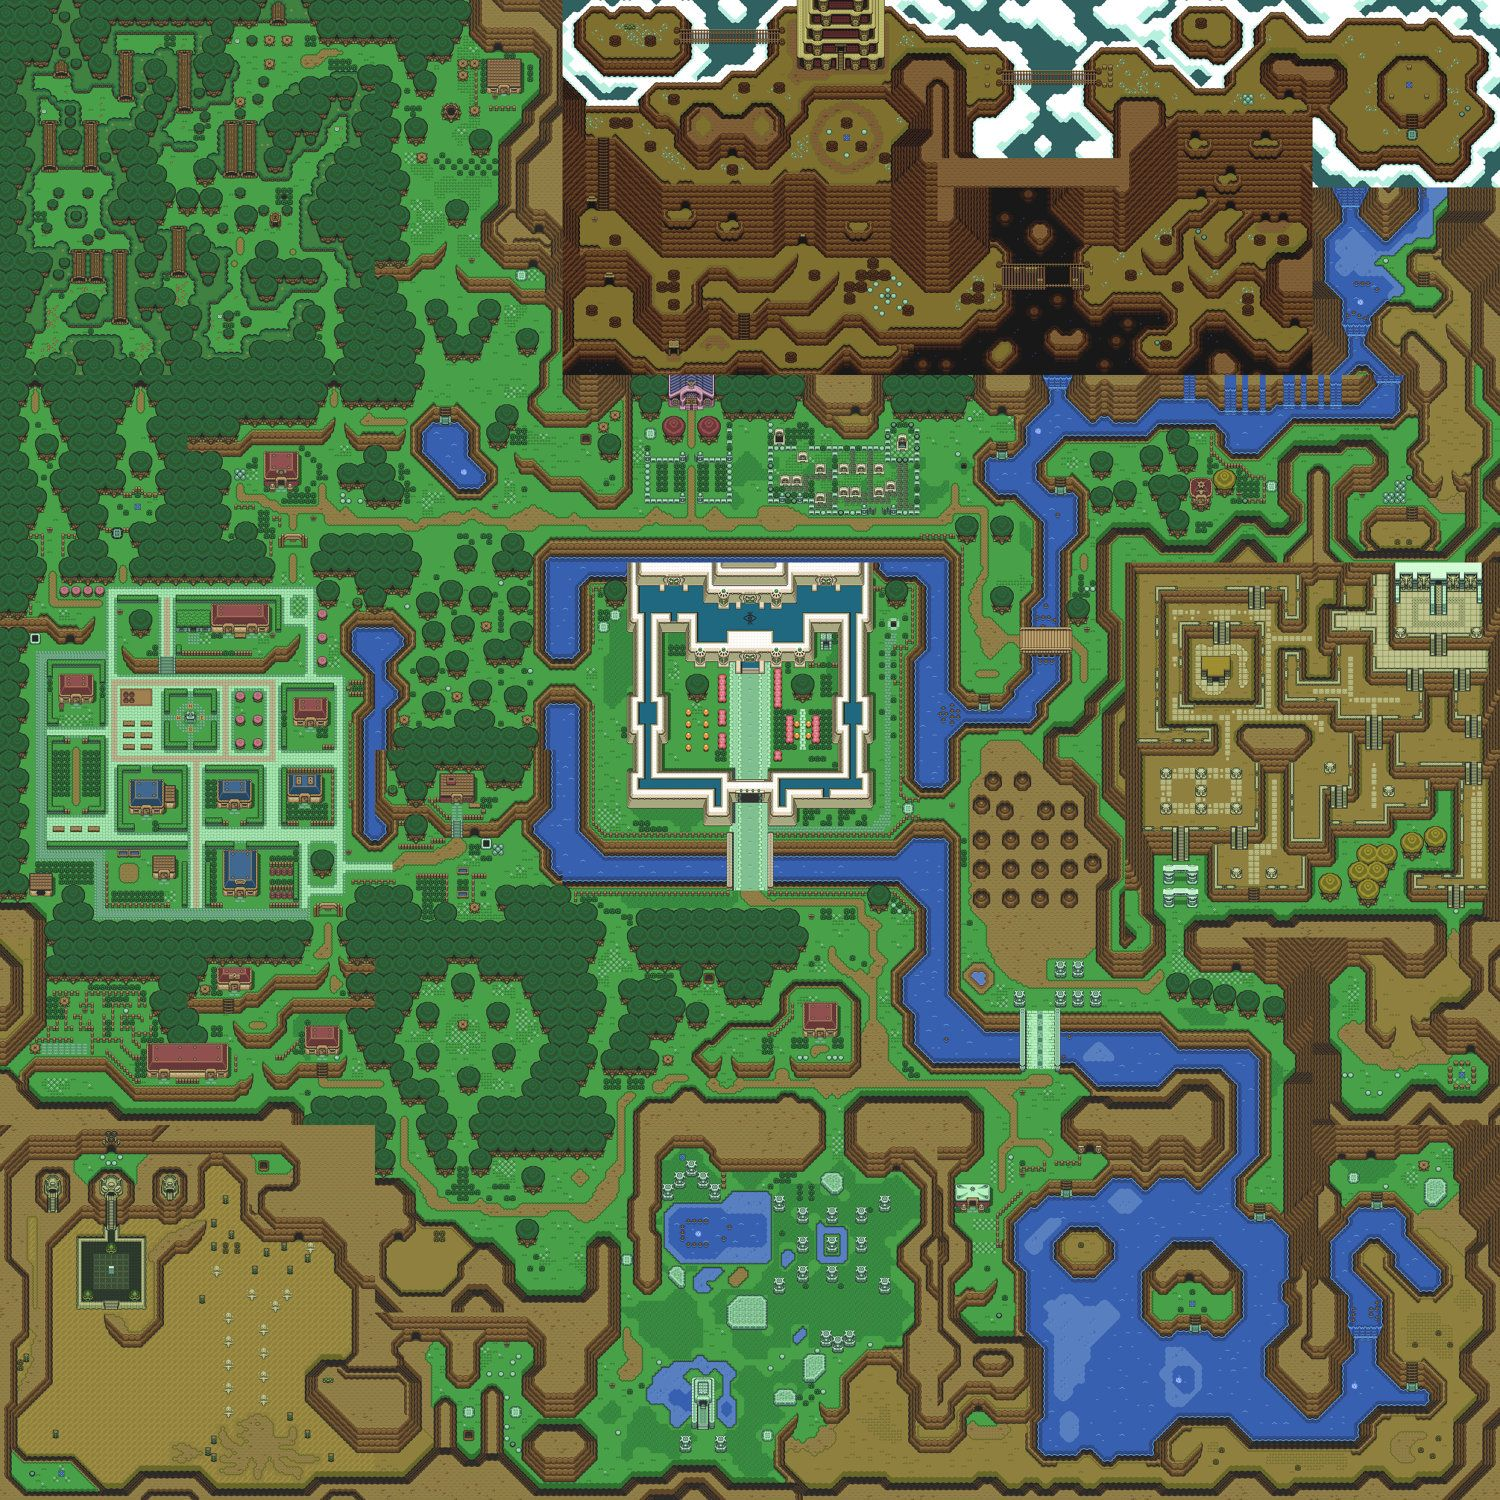 Legend Of Zelda Map Zelda Map Legend Of Zelda Map Poster Ideas for zelda link to past map